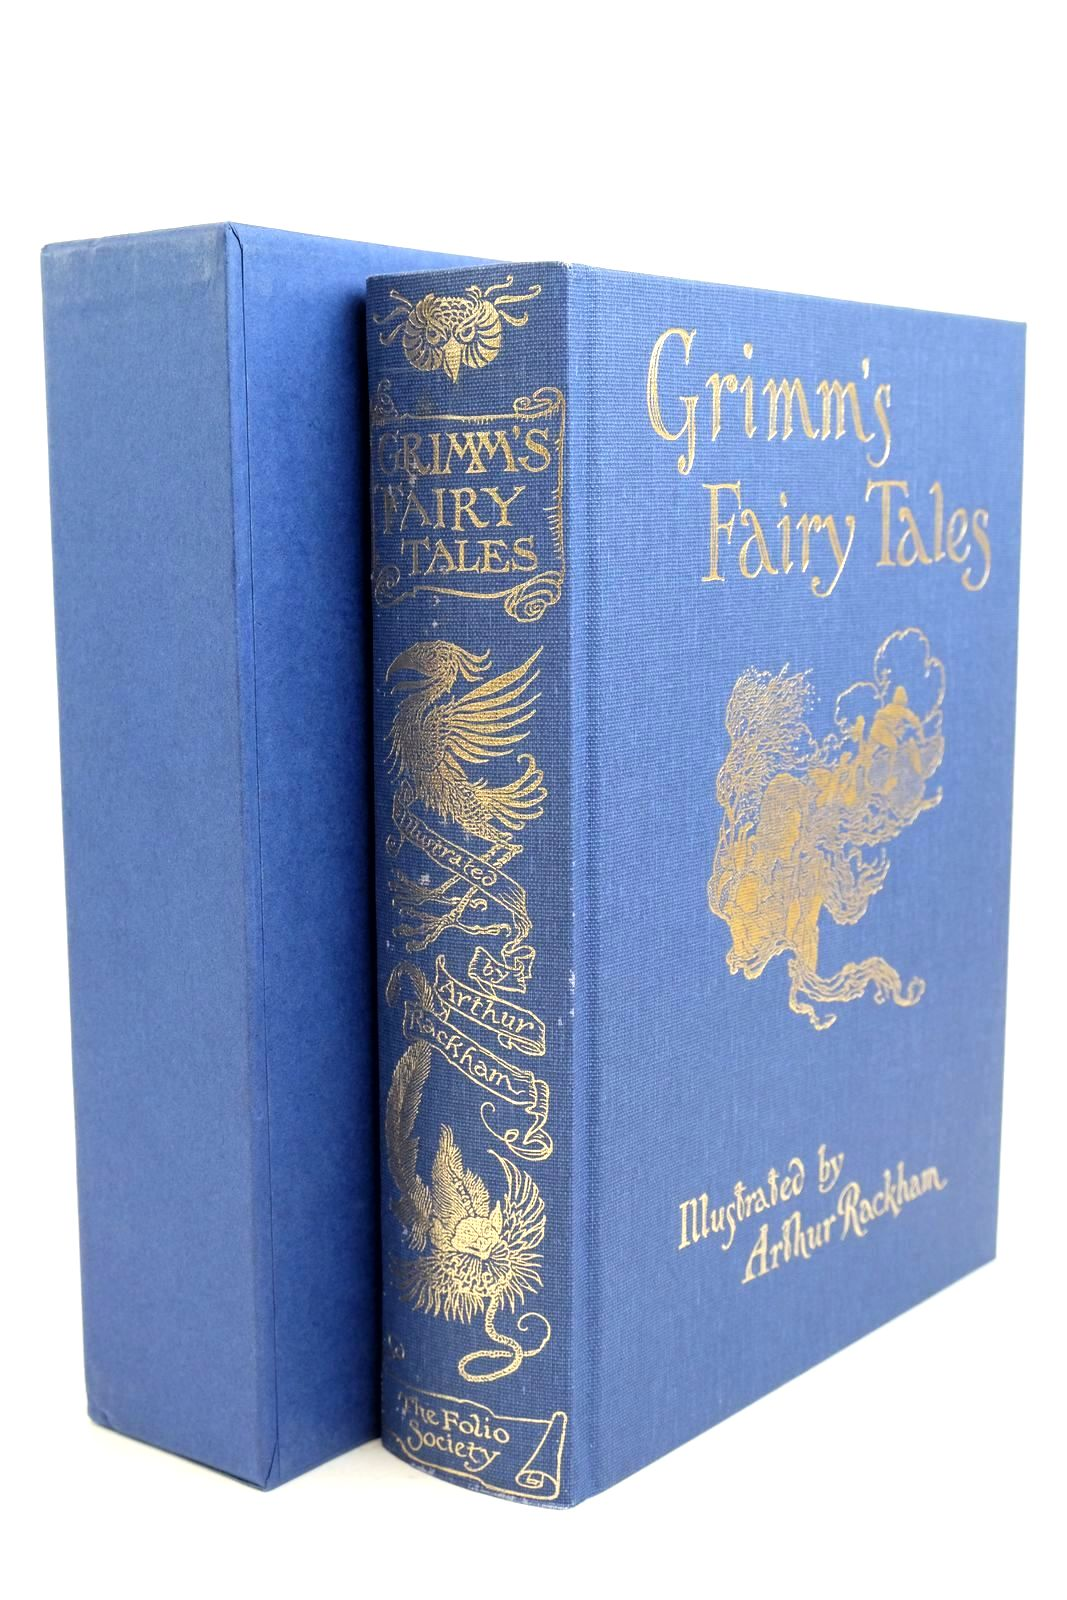 Photo of THE FAIRY TALES OF THE BROTHERS GRIMM written by Grimm, Brothers illustrated by Rackham, Arthur published by Folio Society (STOCK CODE: 1321125)  for sale by Stella & Rose's Books